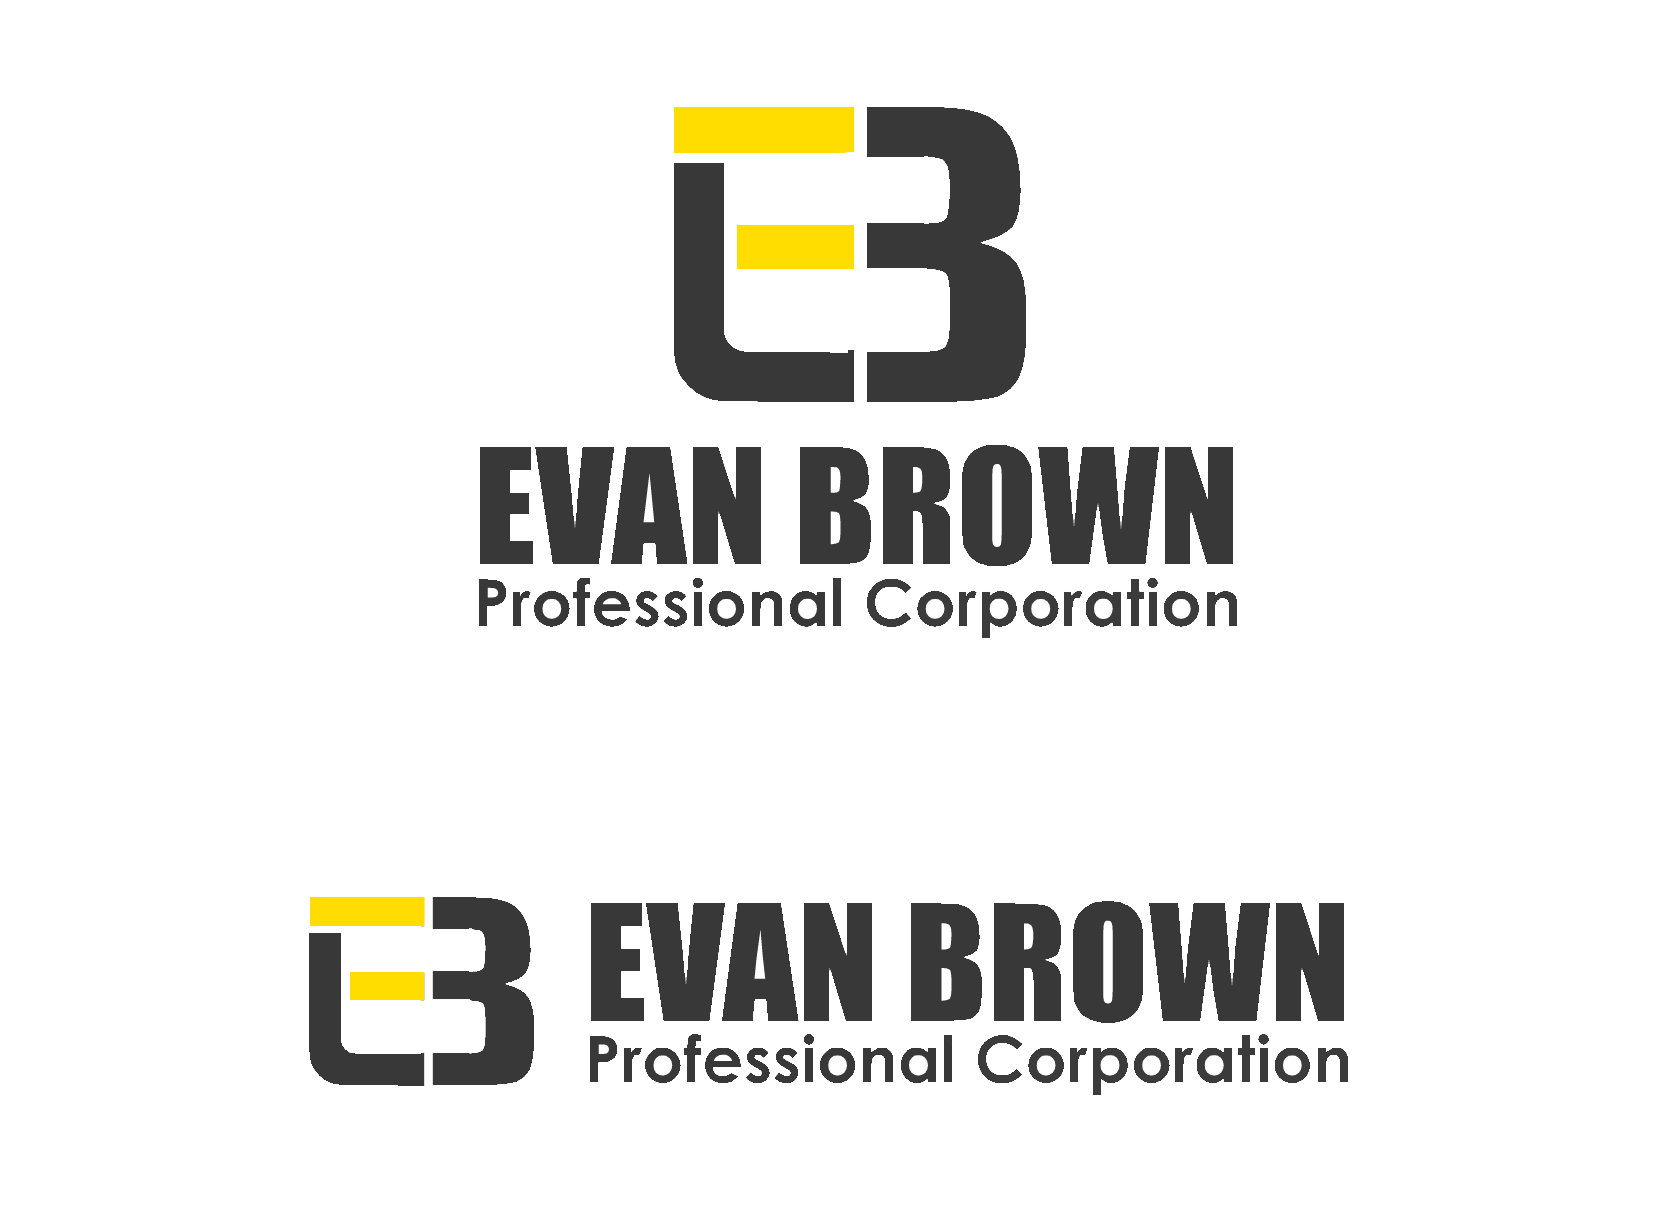 Logo Design by Ismail Adhi Wibowo - Entry No. 102 in the Logo Design Contest Inspiring Logo Design for Evan Brown Professional Corporation.